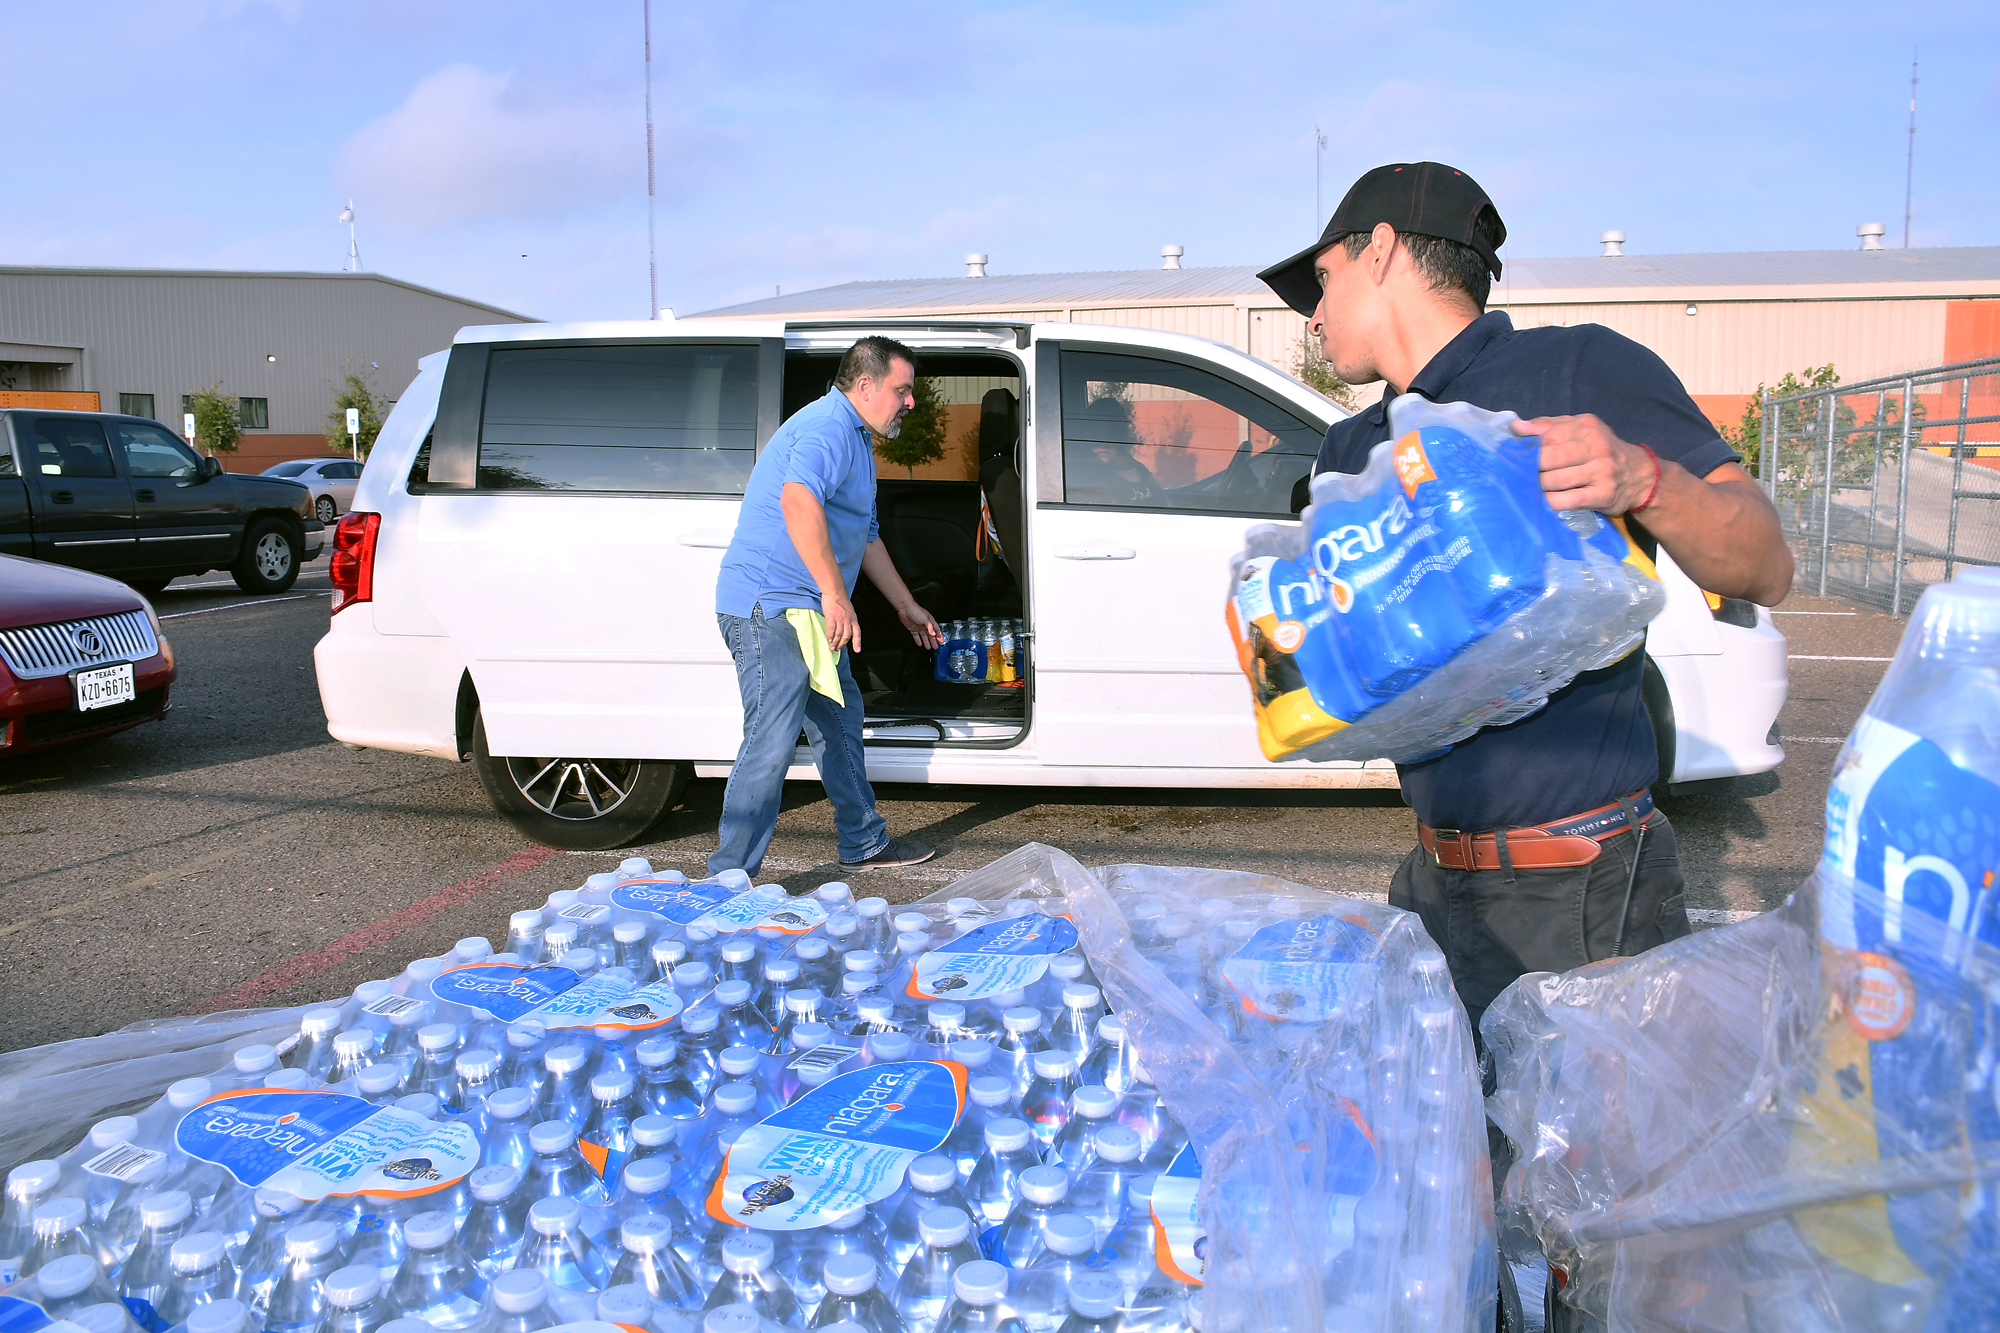 After 11 days, boil water notice rescinded throughout Laredo by TCEQ